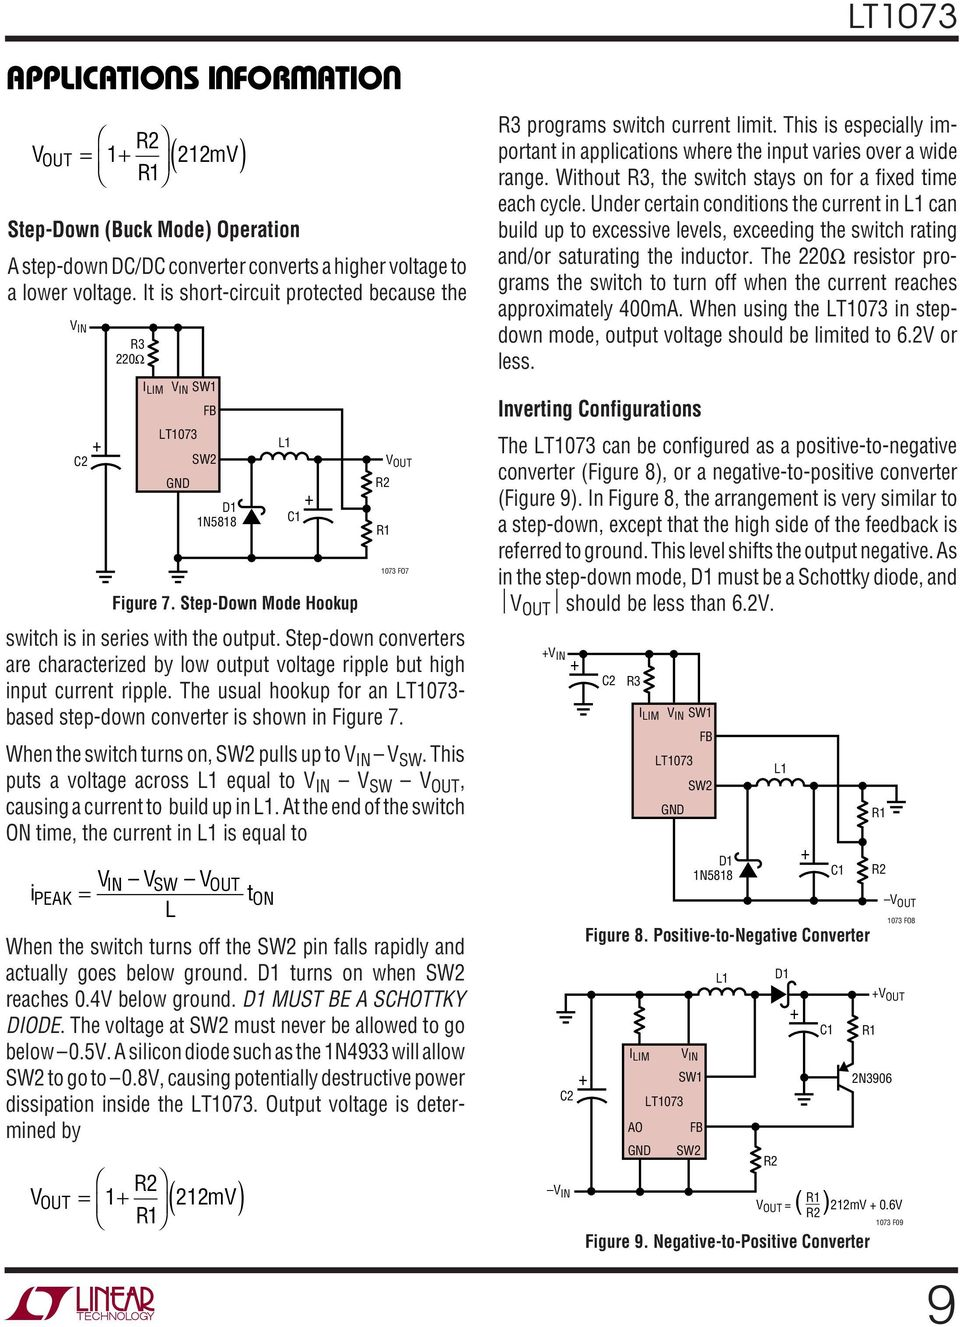 The usual hookup for an - based step-down converter is shown in Figure 7. When the switch turns on, pulls up to V SW.